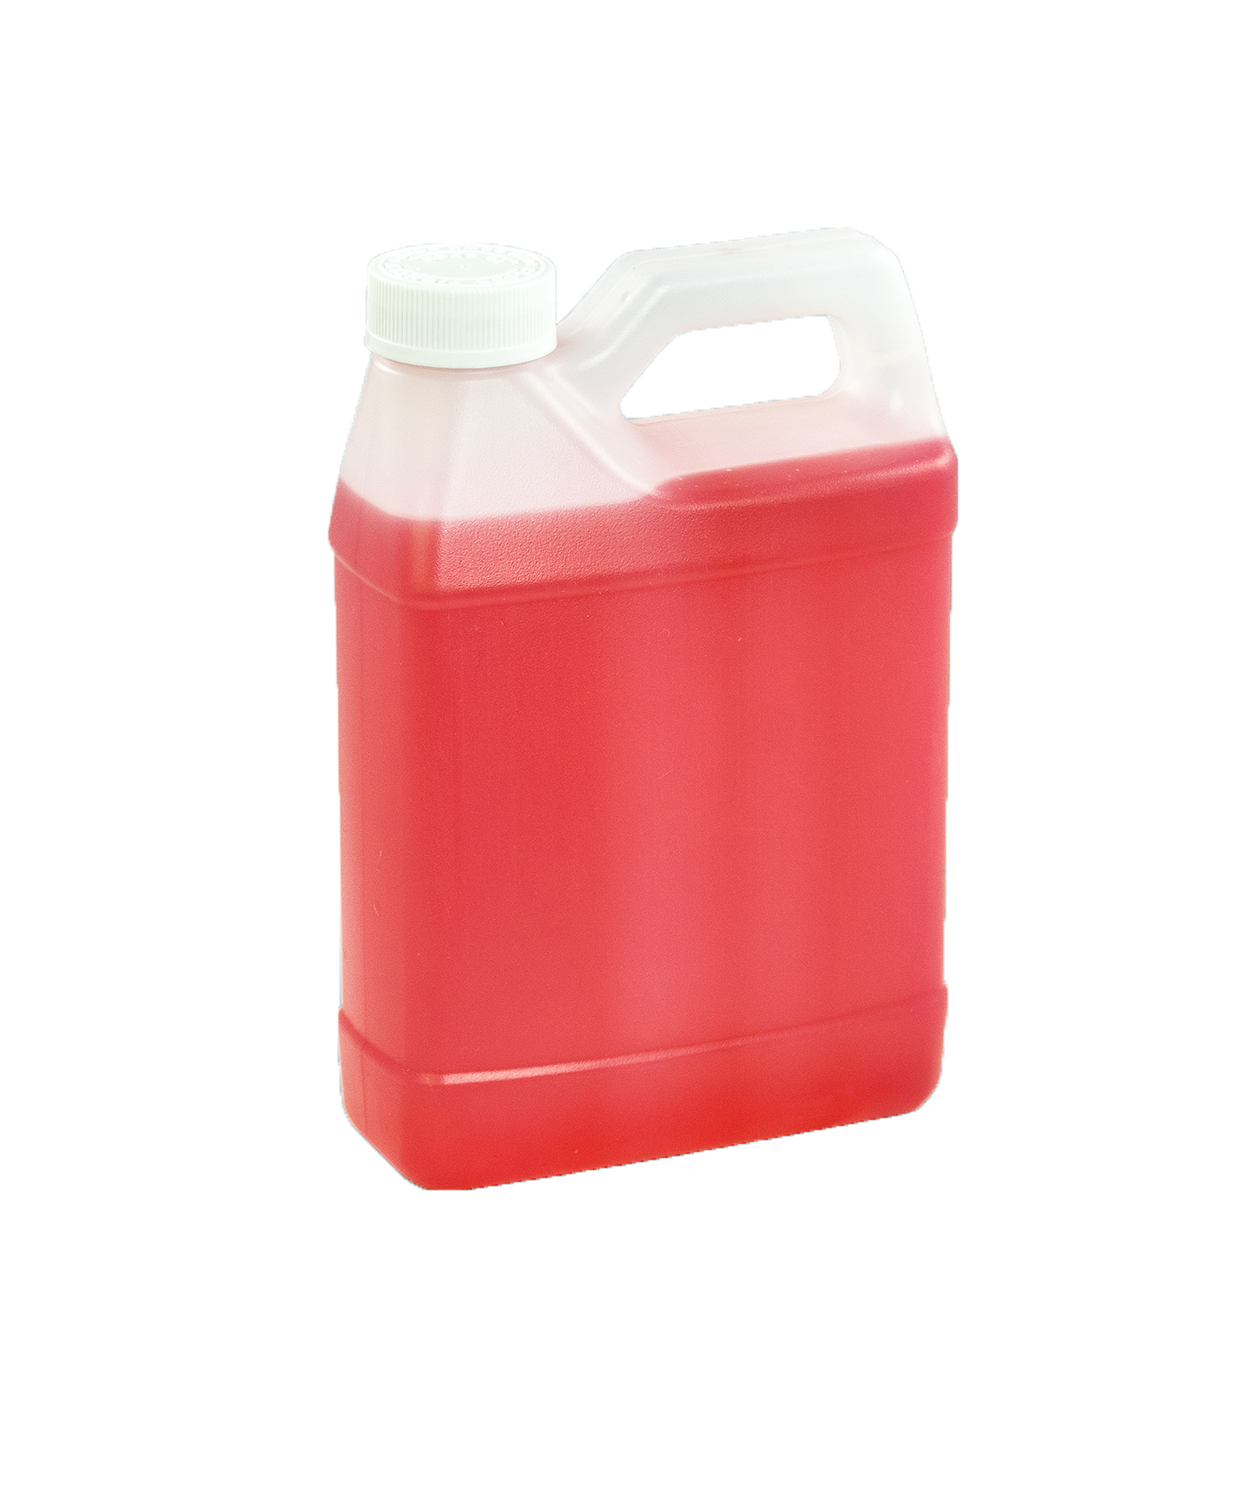 Propylene Glycol Concentrate, Pink